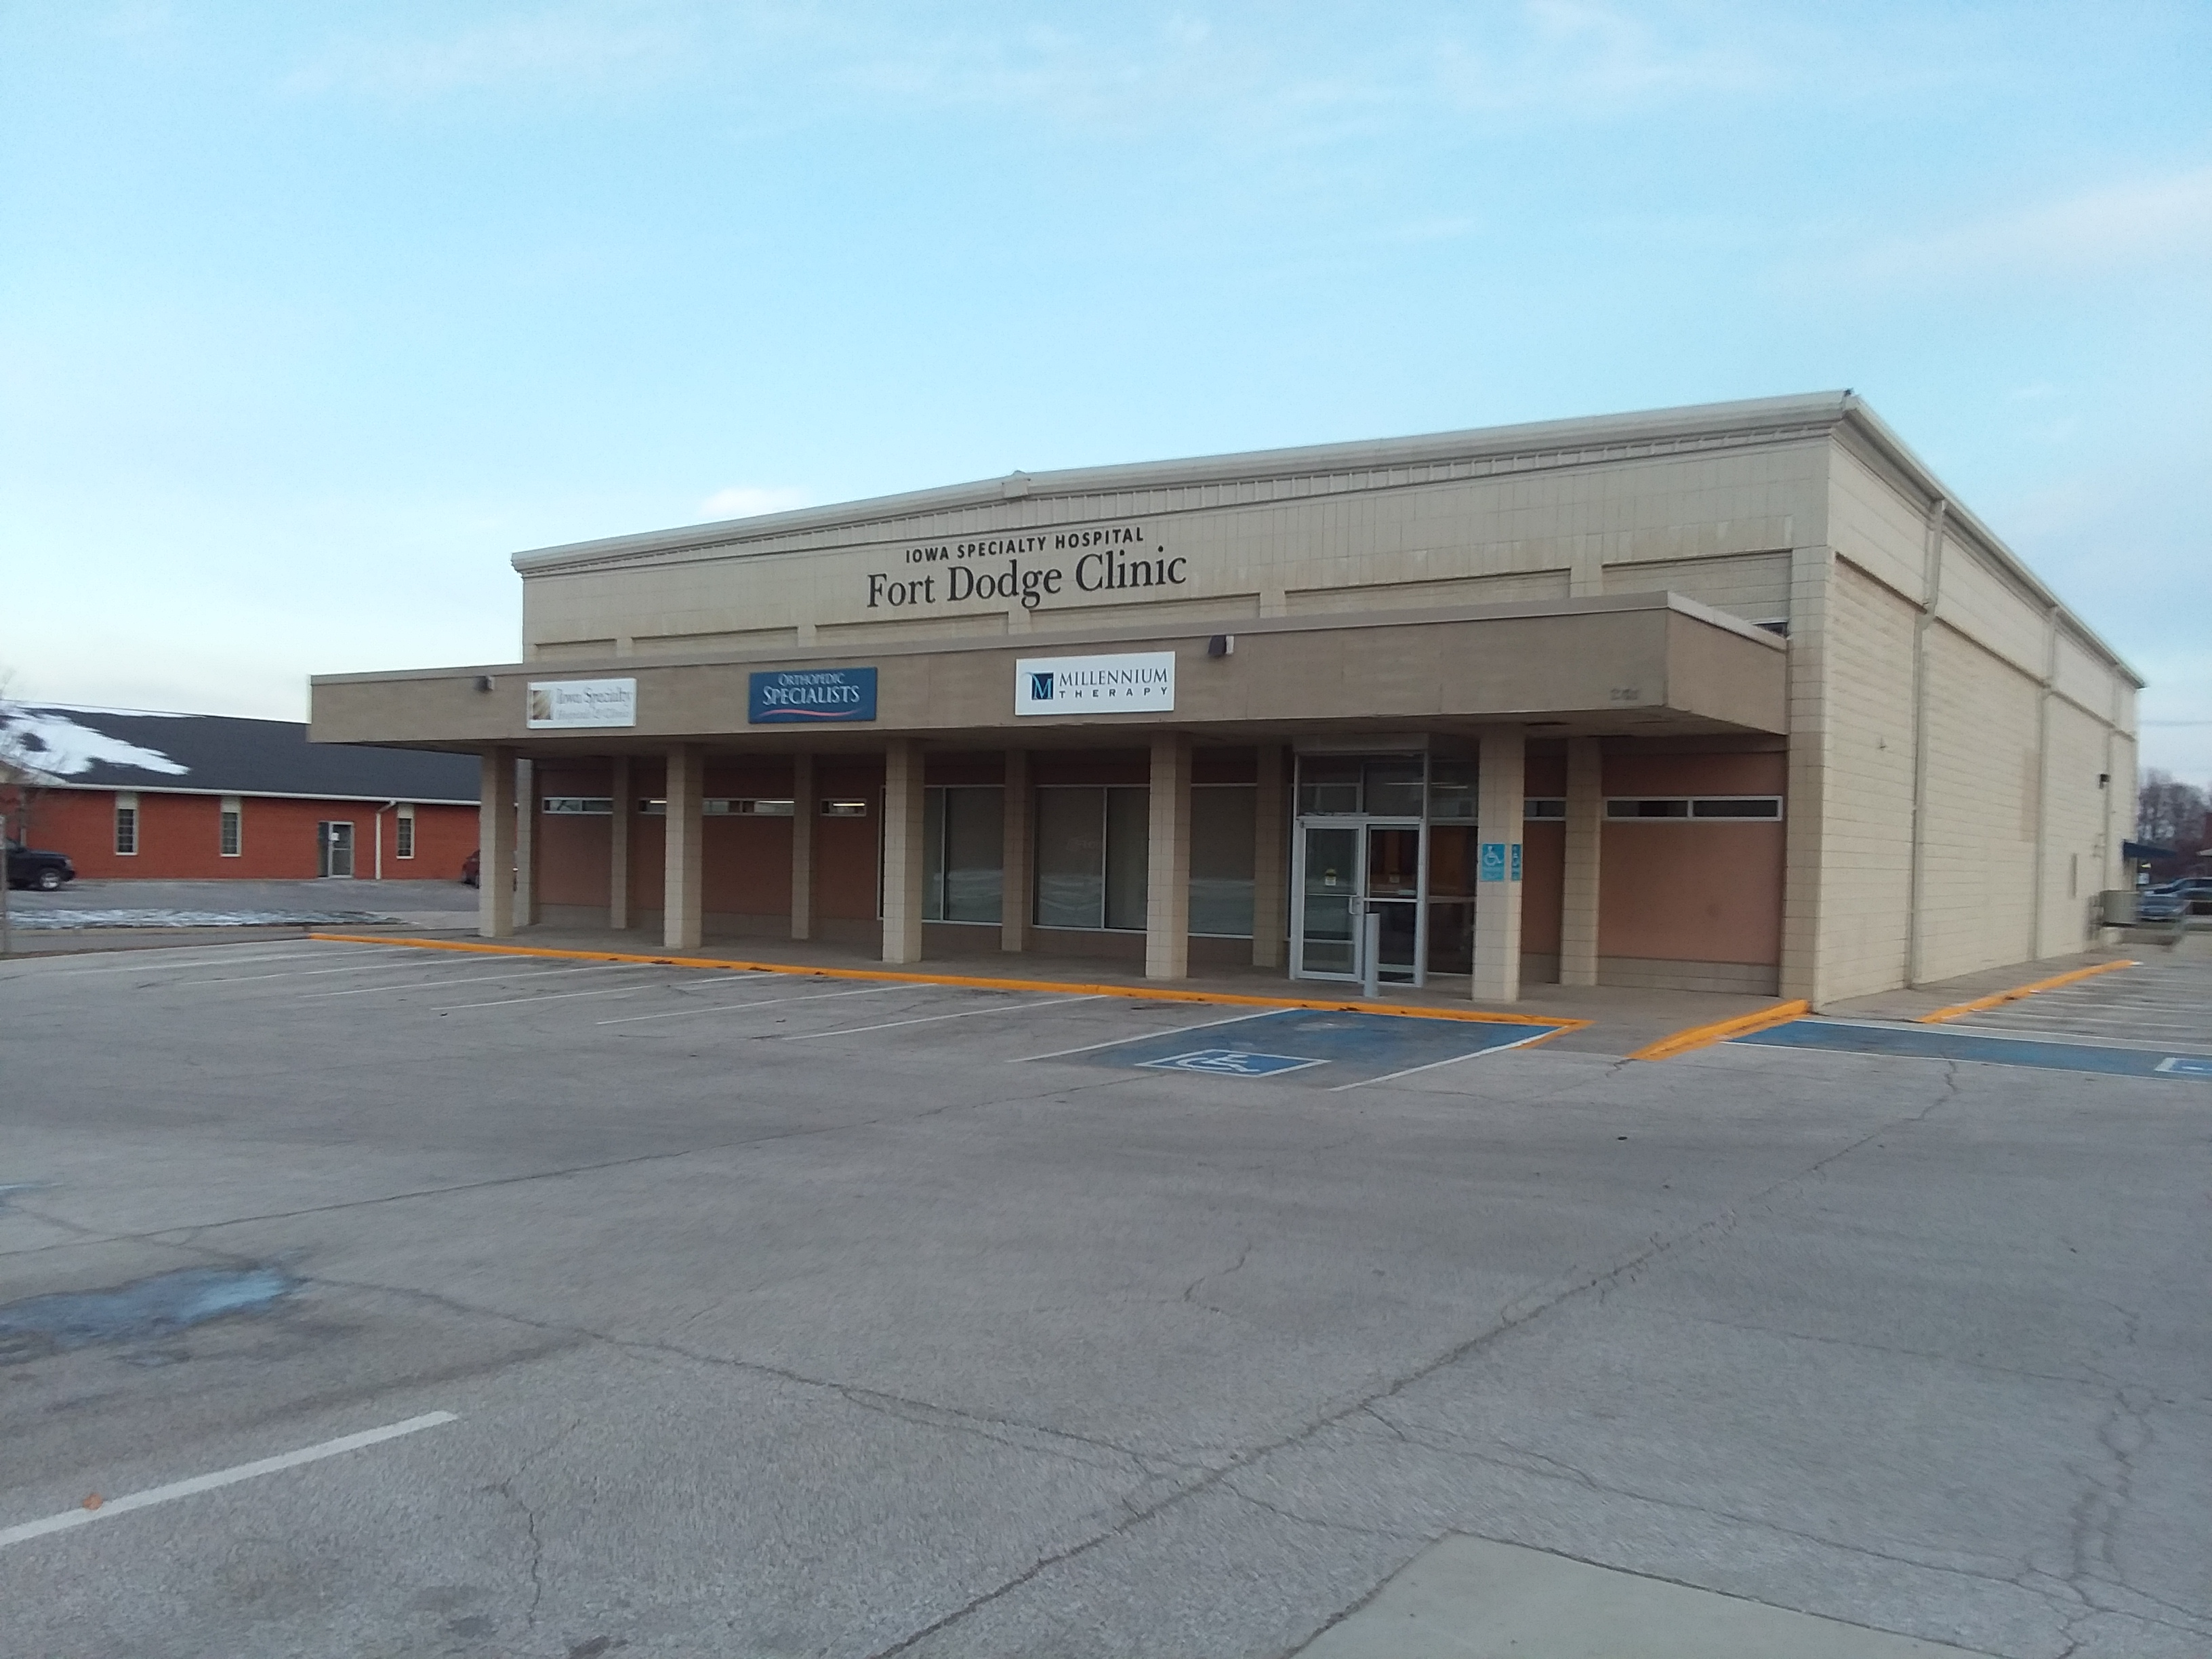 Fort Dodge Clinic